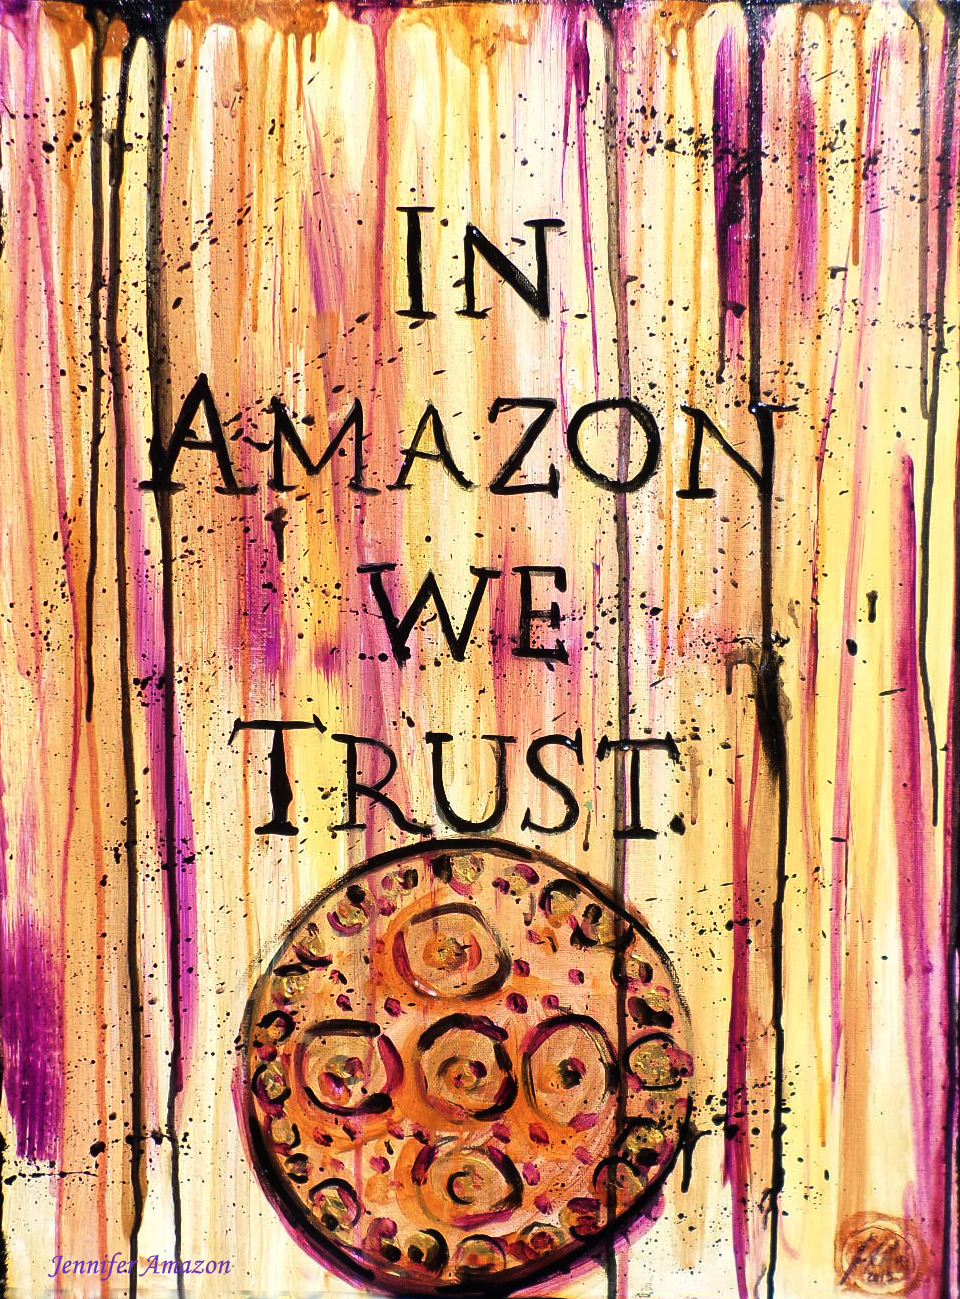 In Amazon We Trust